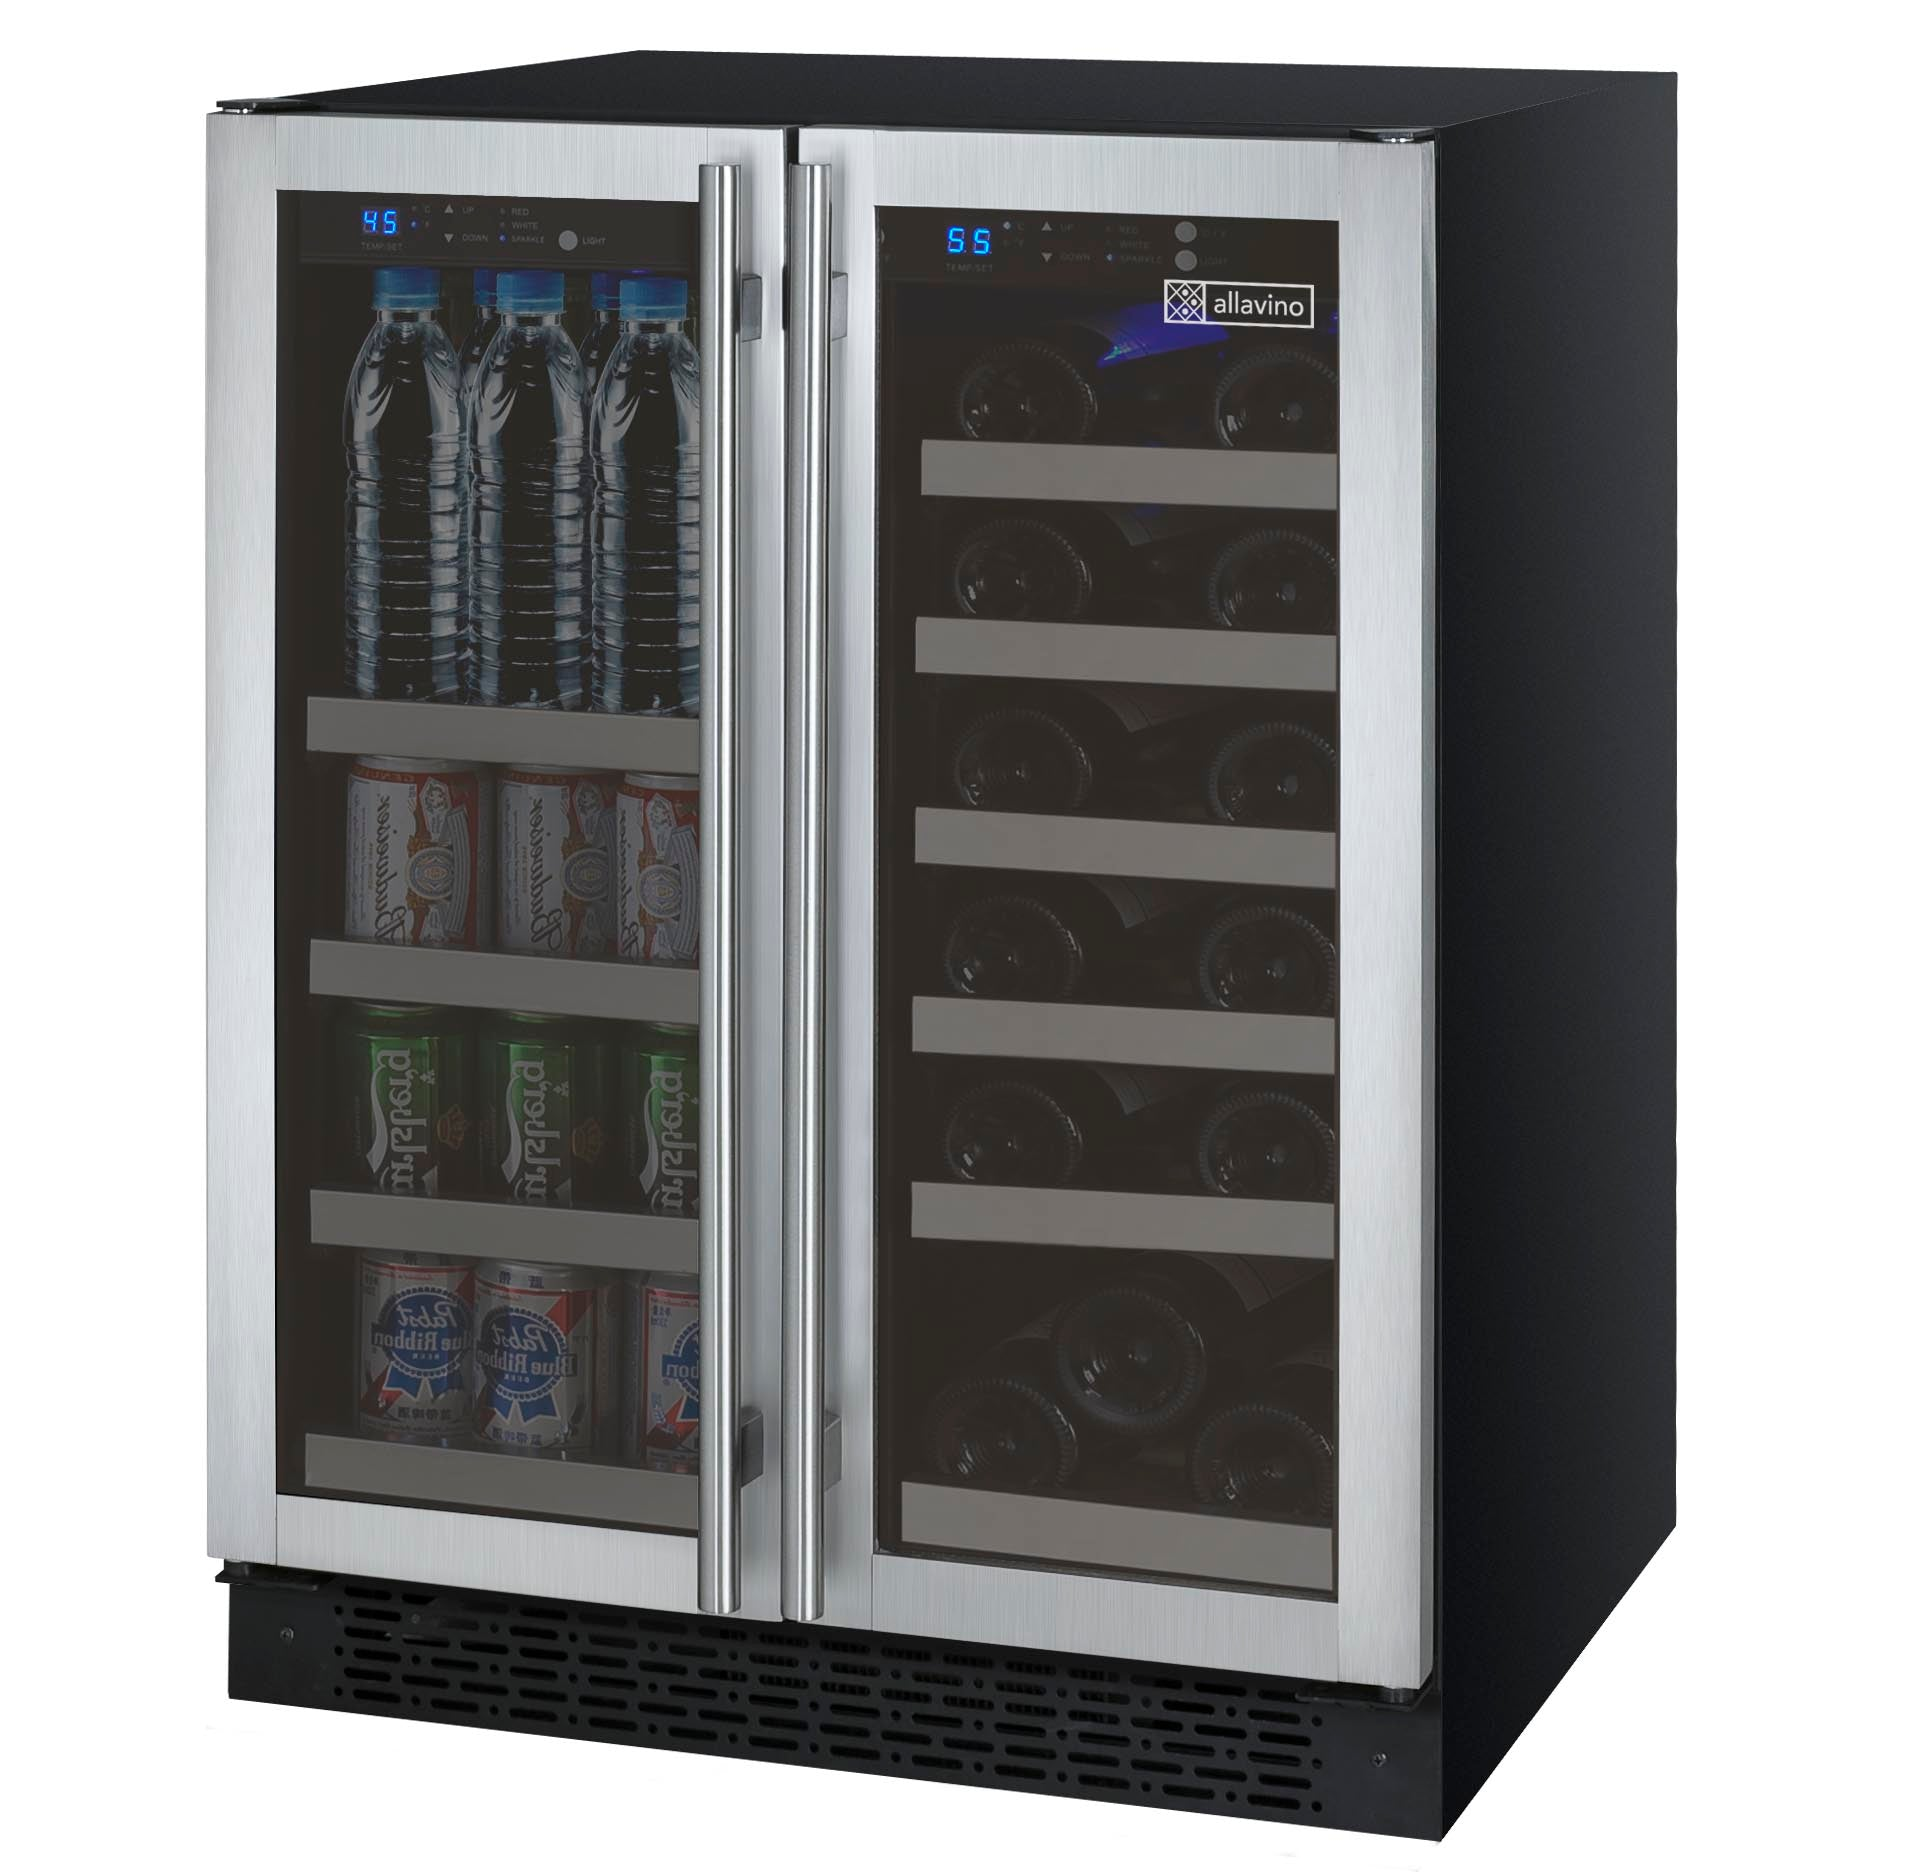 Allavino 2 Door Wine Refrigerator/Beverage Center - Stainless Steel Doors VSWB-2SSFN - Swings and More